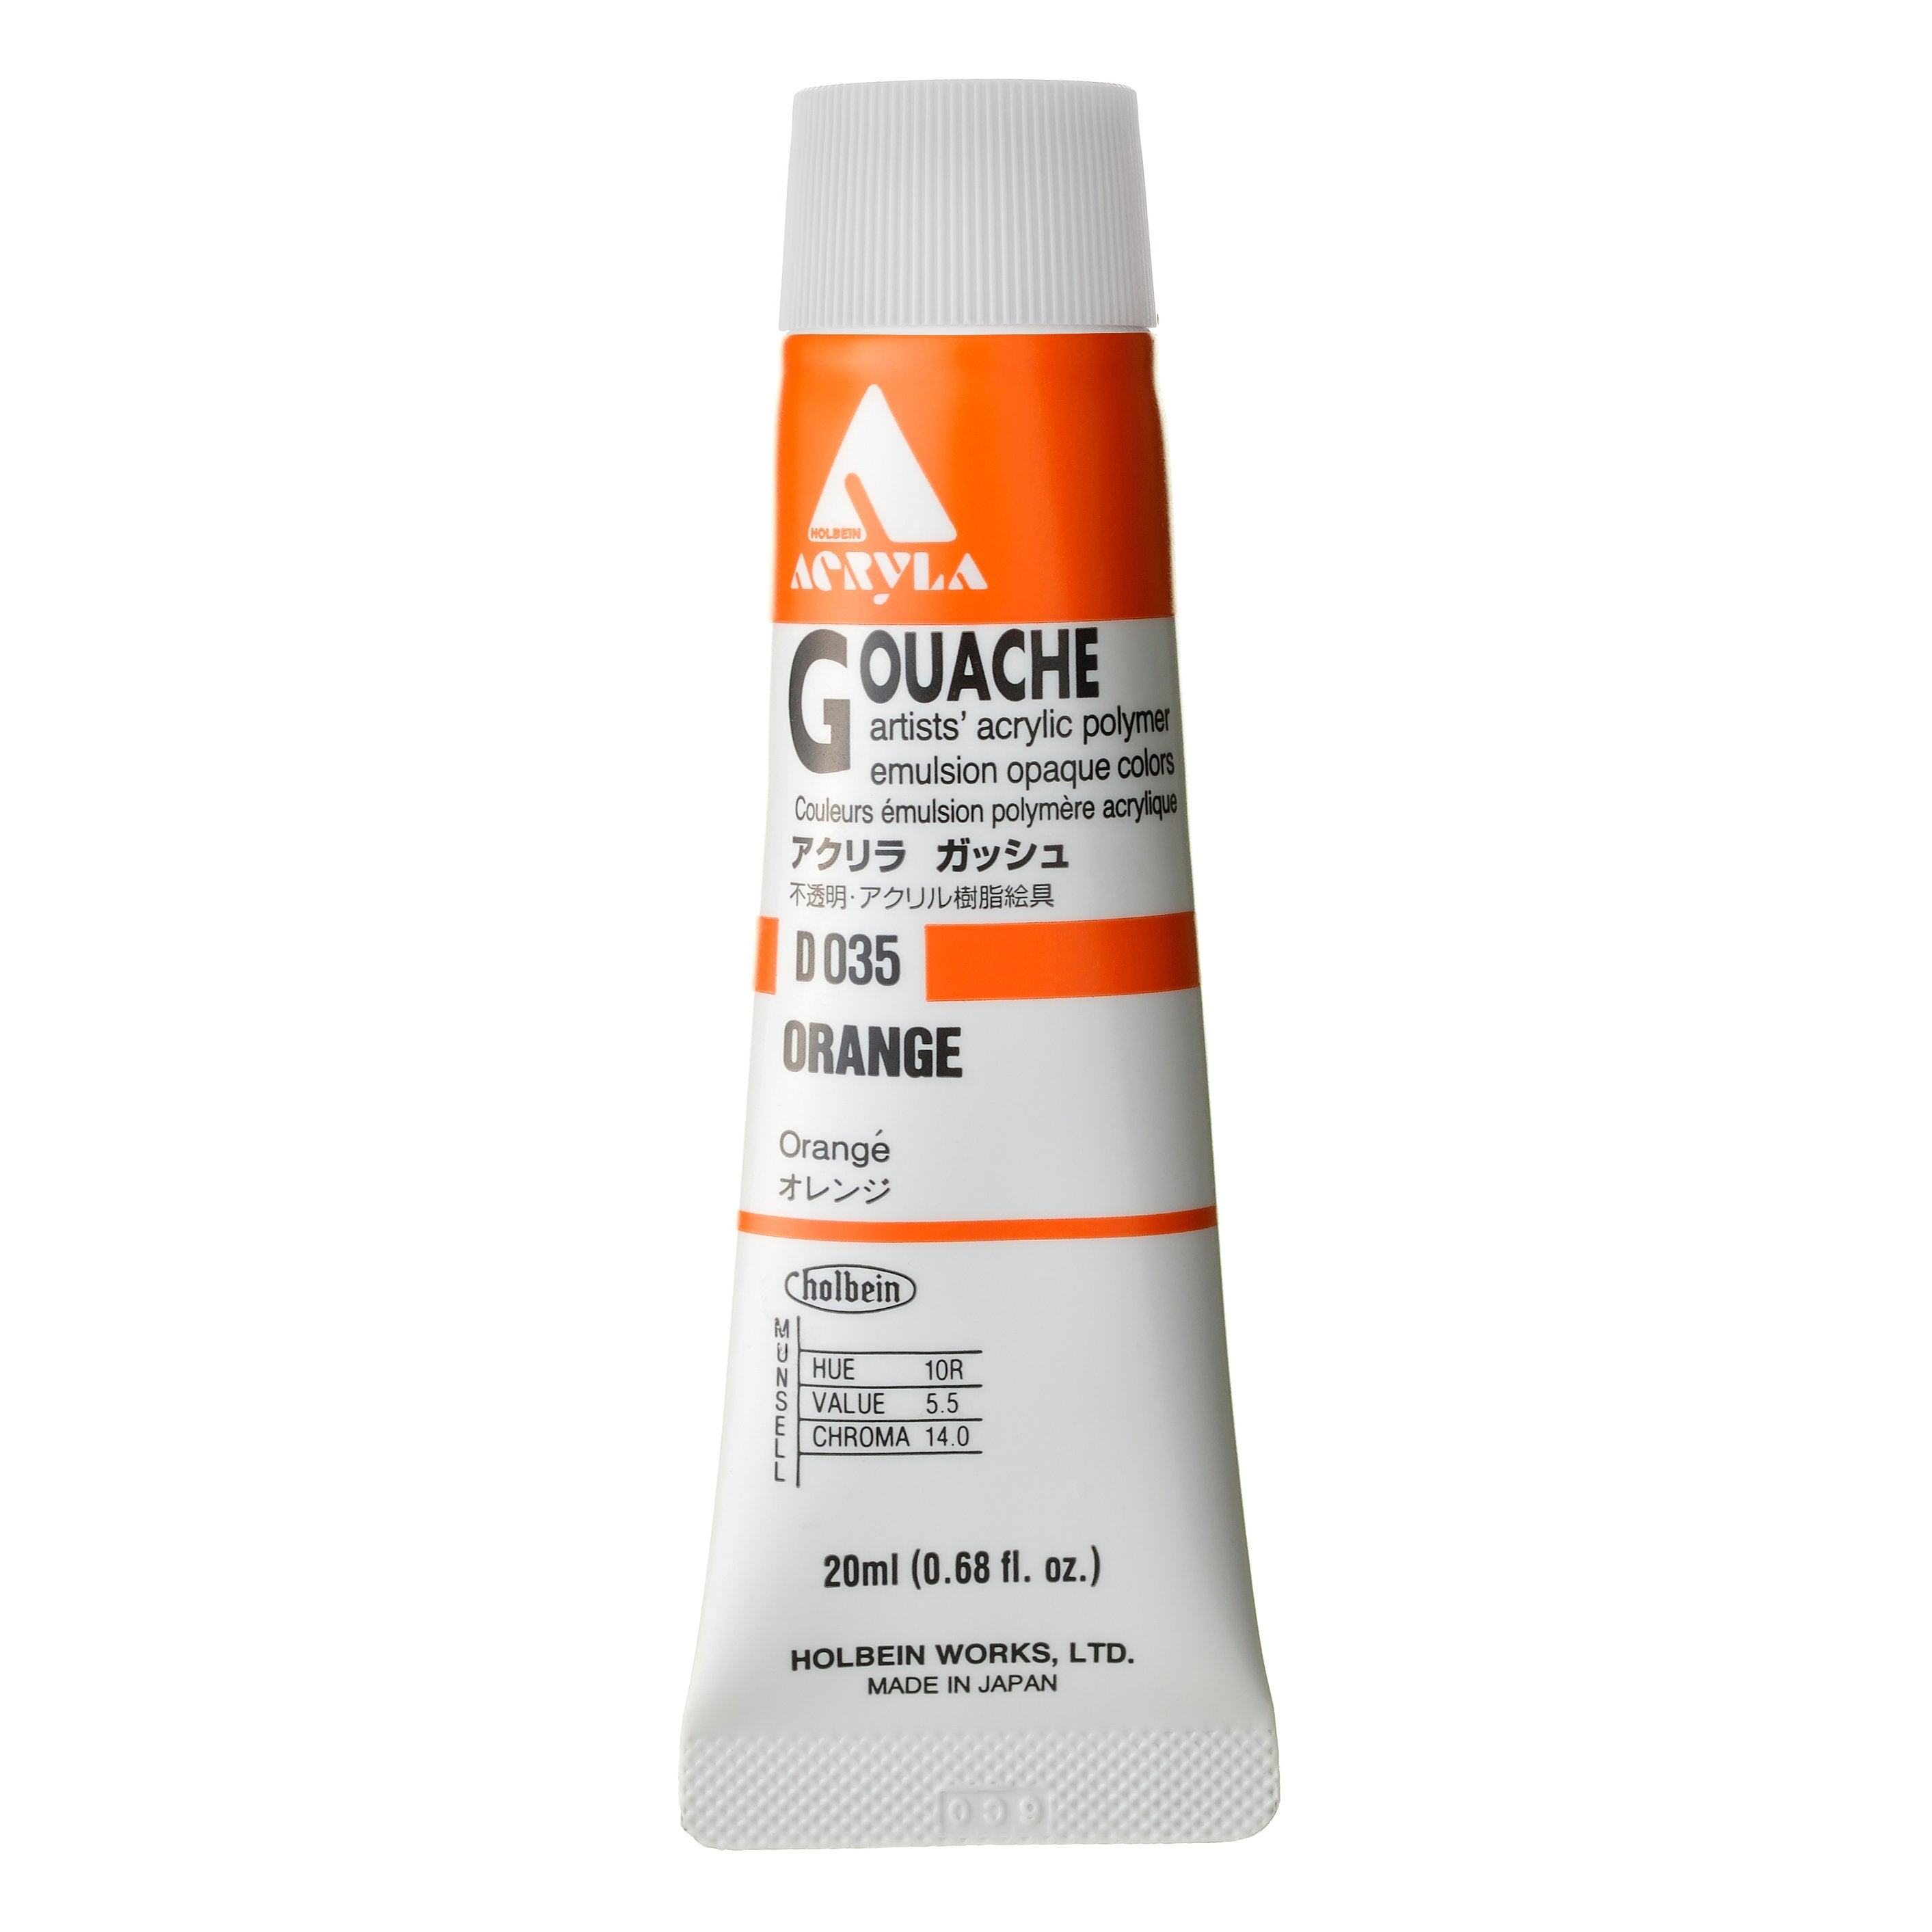 Holbein Acryla Gouache, 20ml, Orange